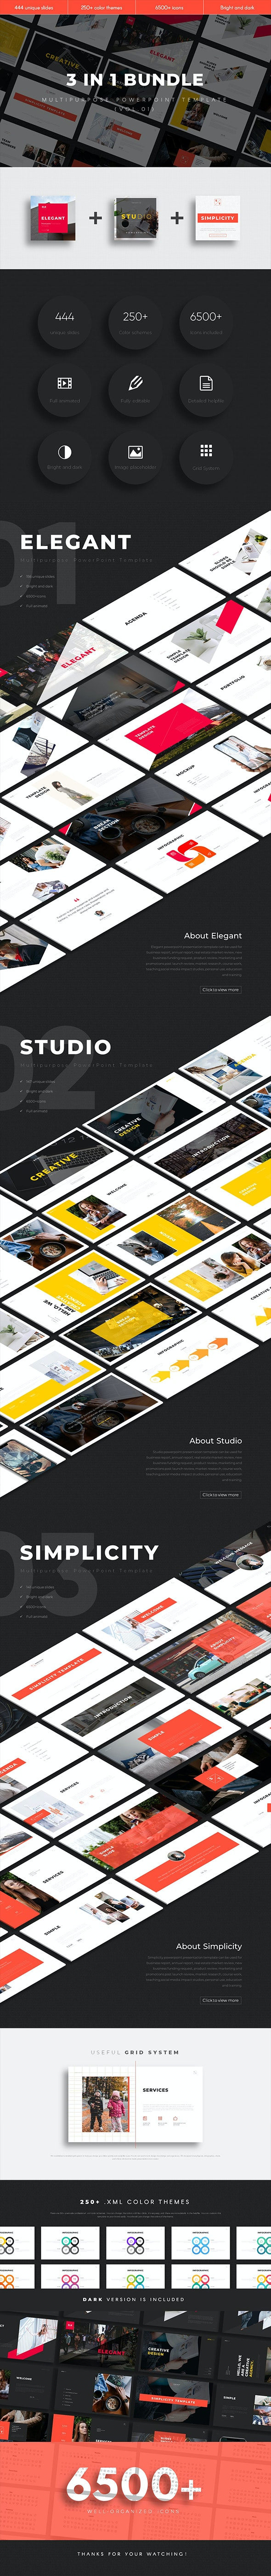 3 in 1 Multipurpose PowerPoint Template(Vol.01) - Business PowerPoint Templates